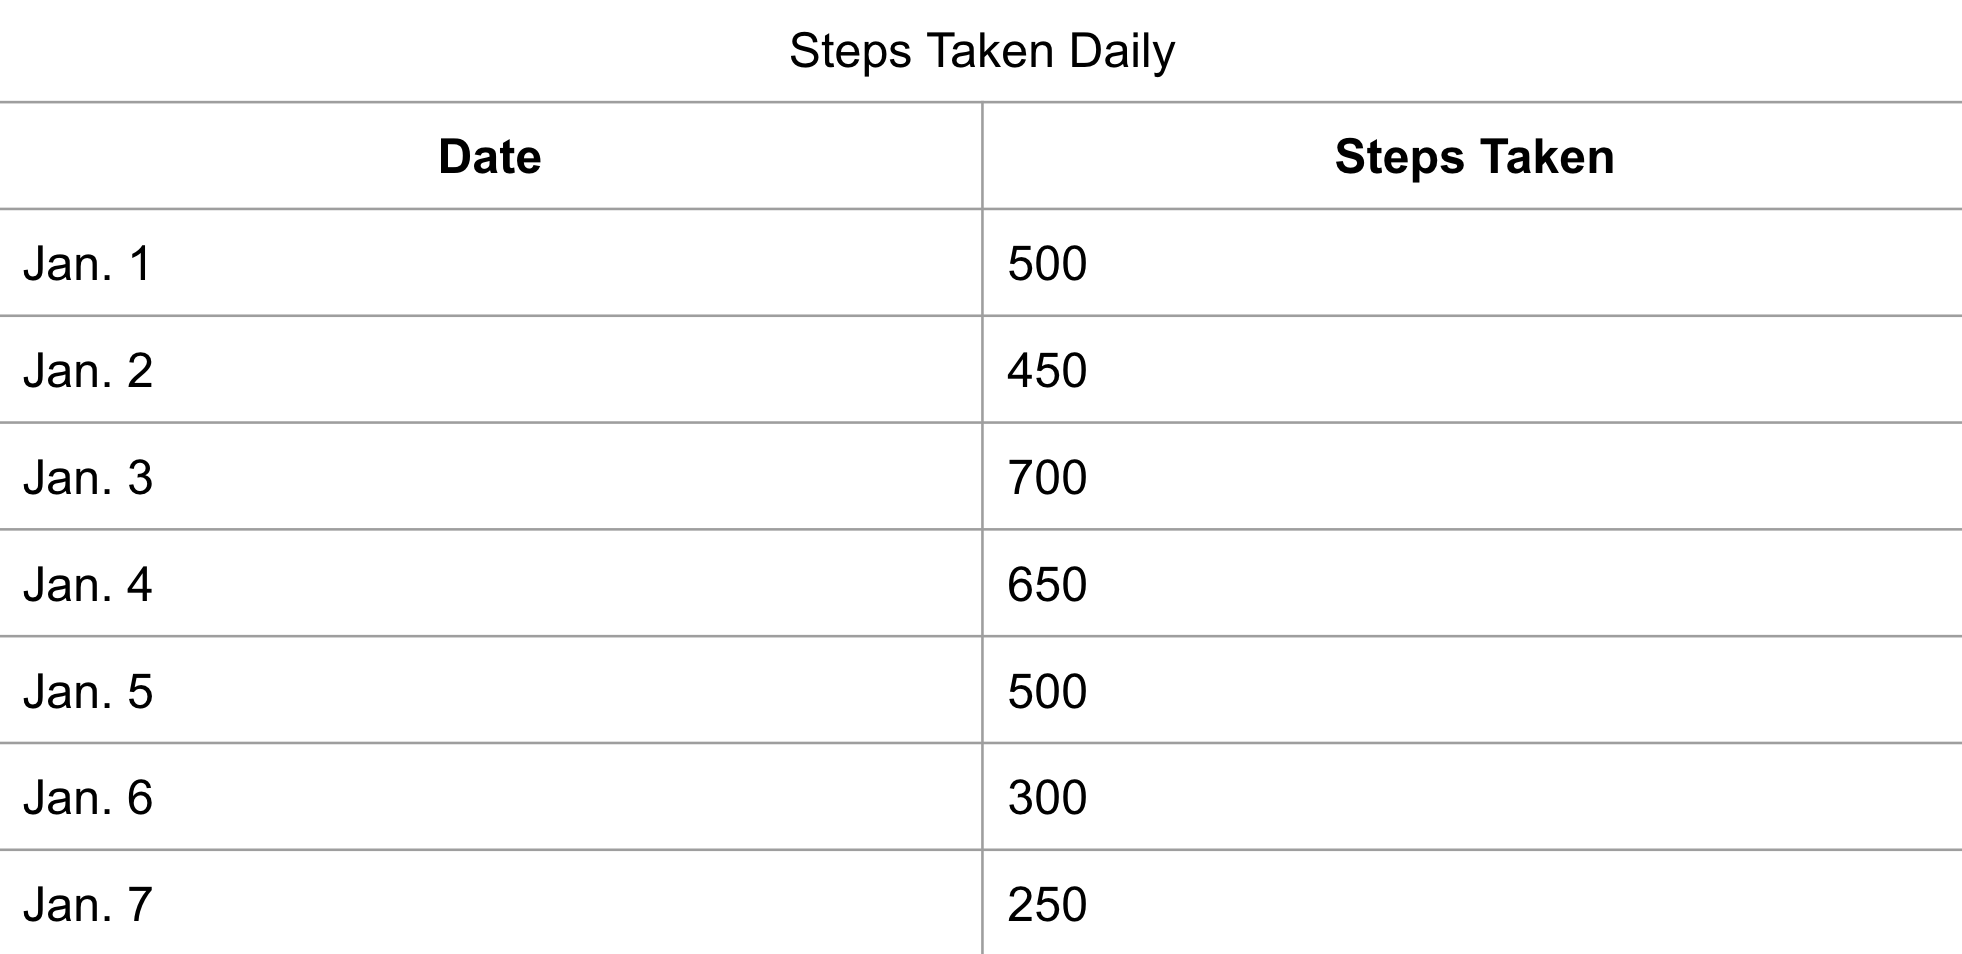 A table of steps taken on different days